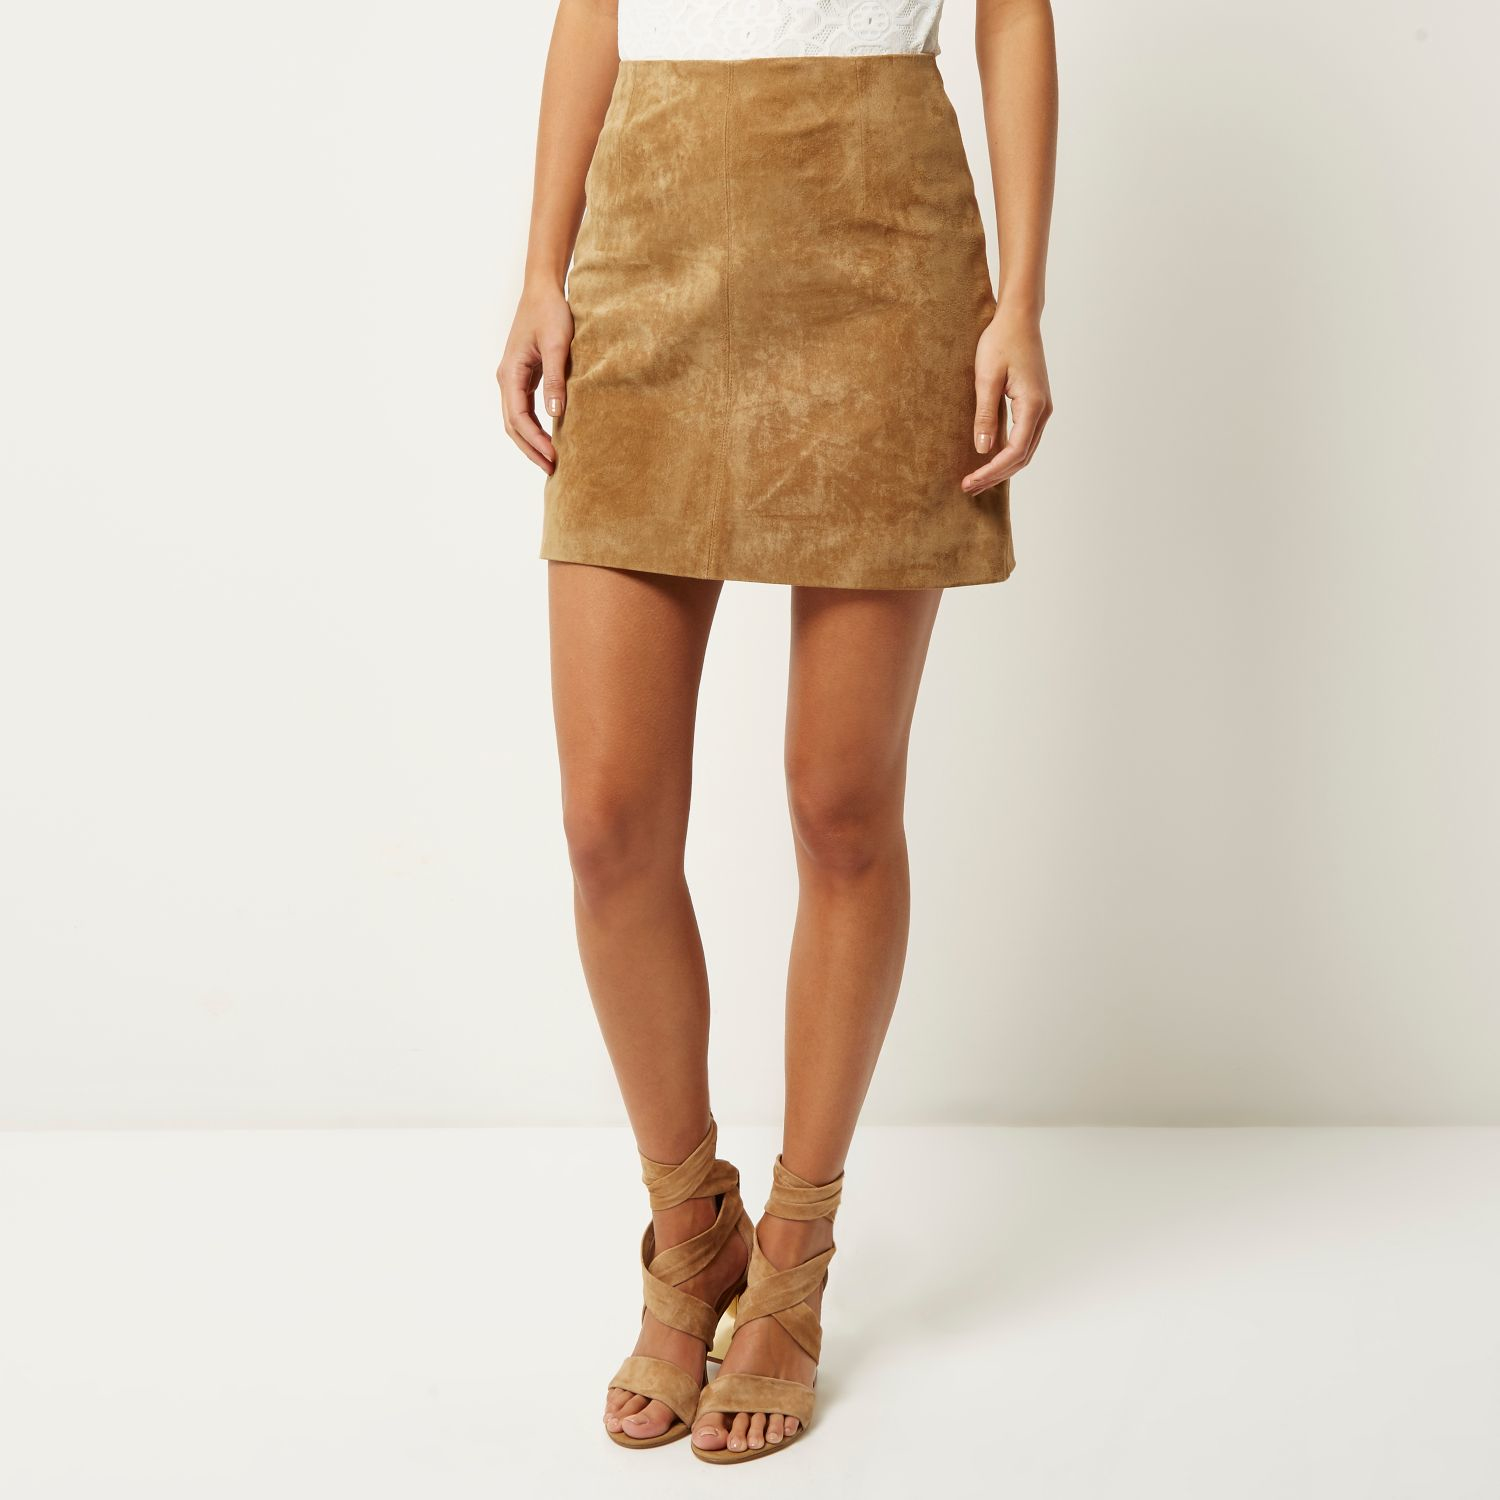 River island Light Brown Suede Mini Skirt in Brown | Lyst